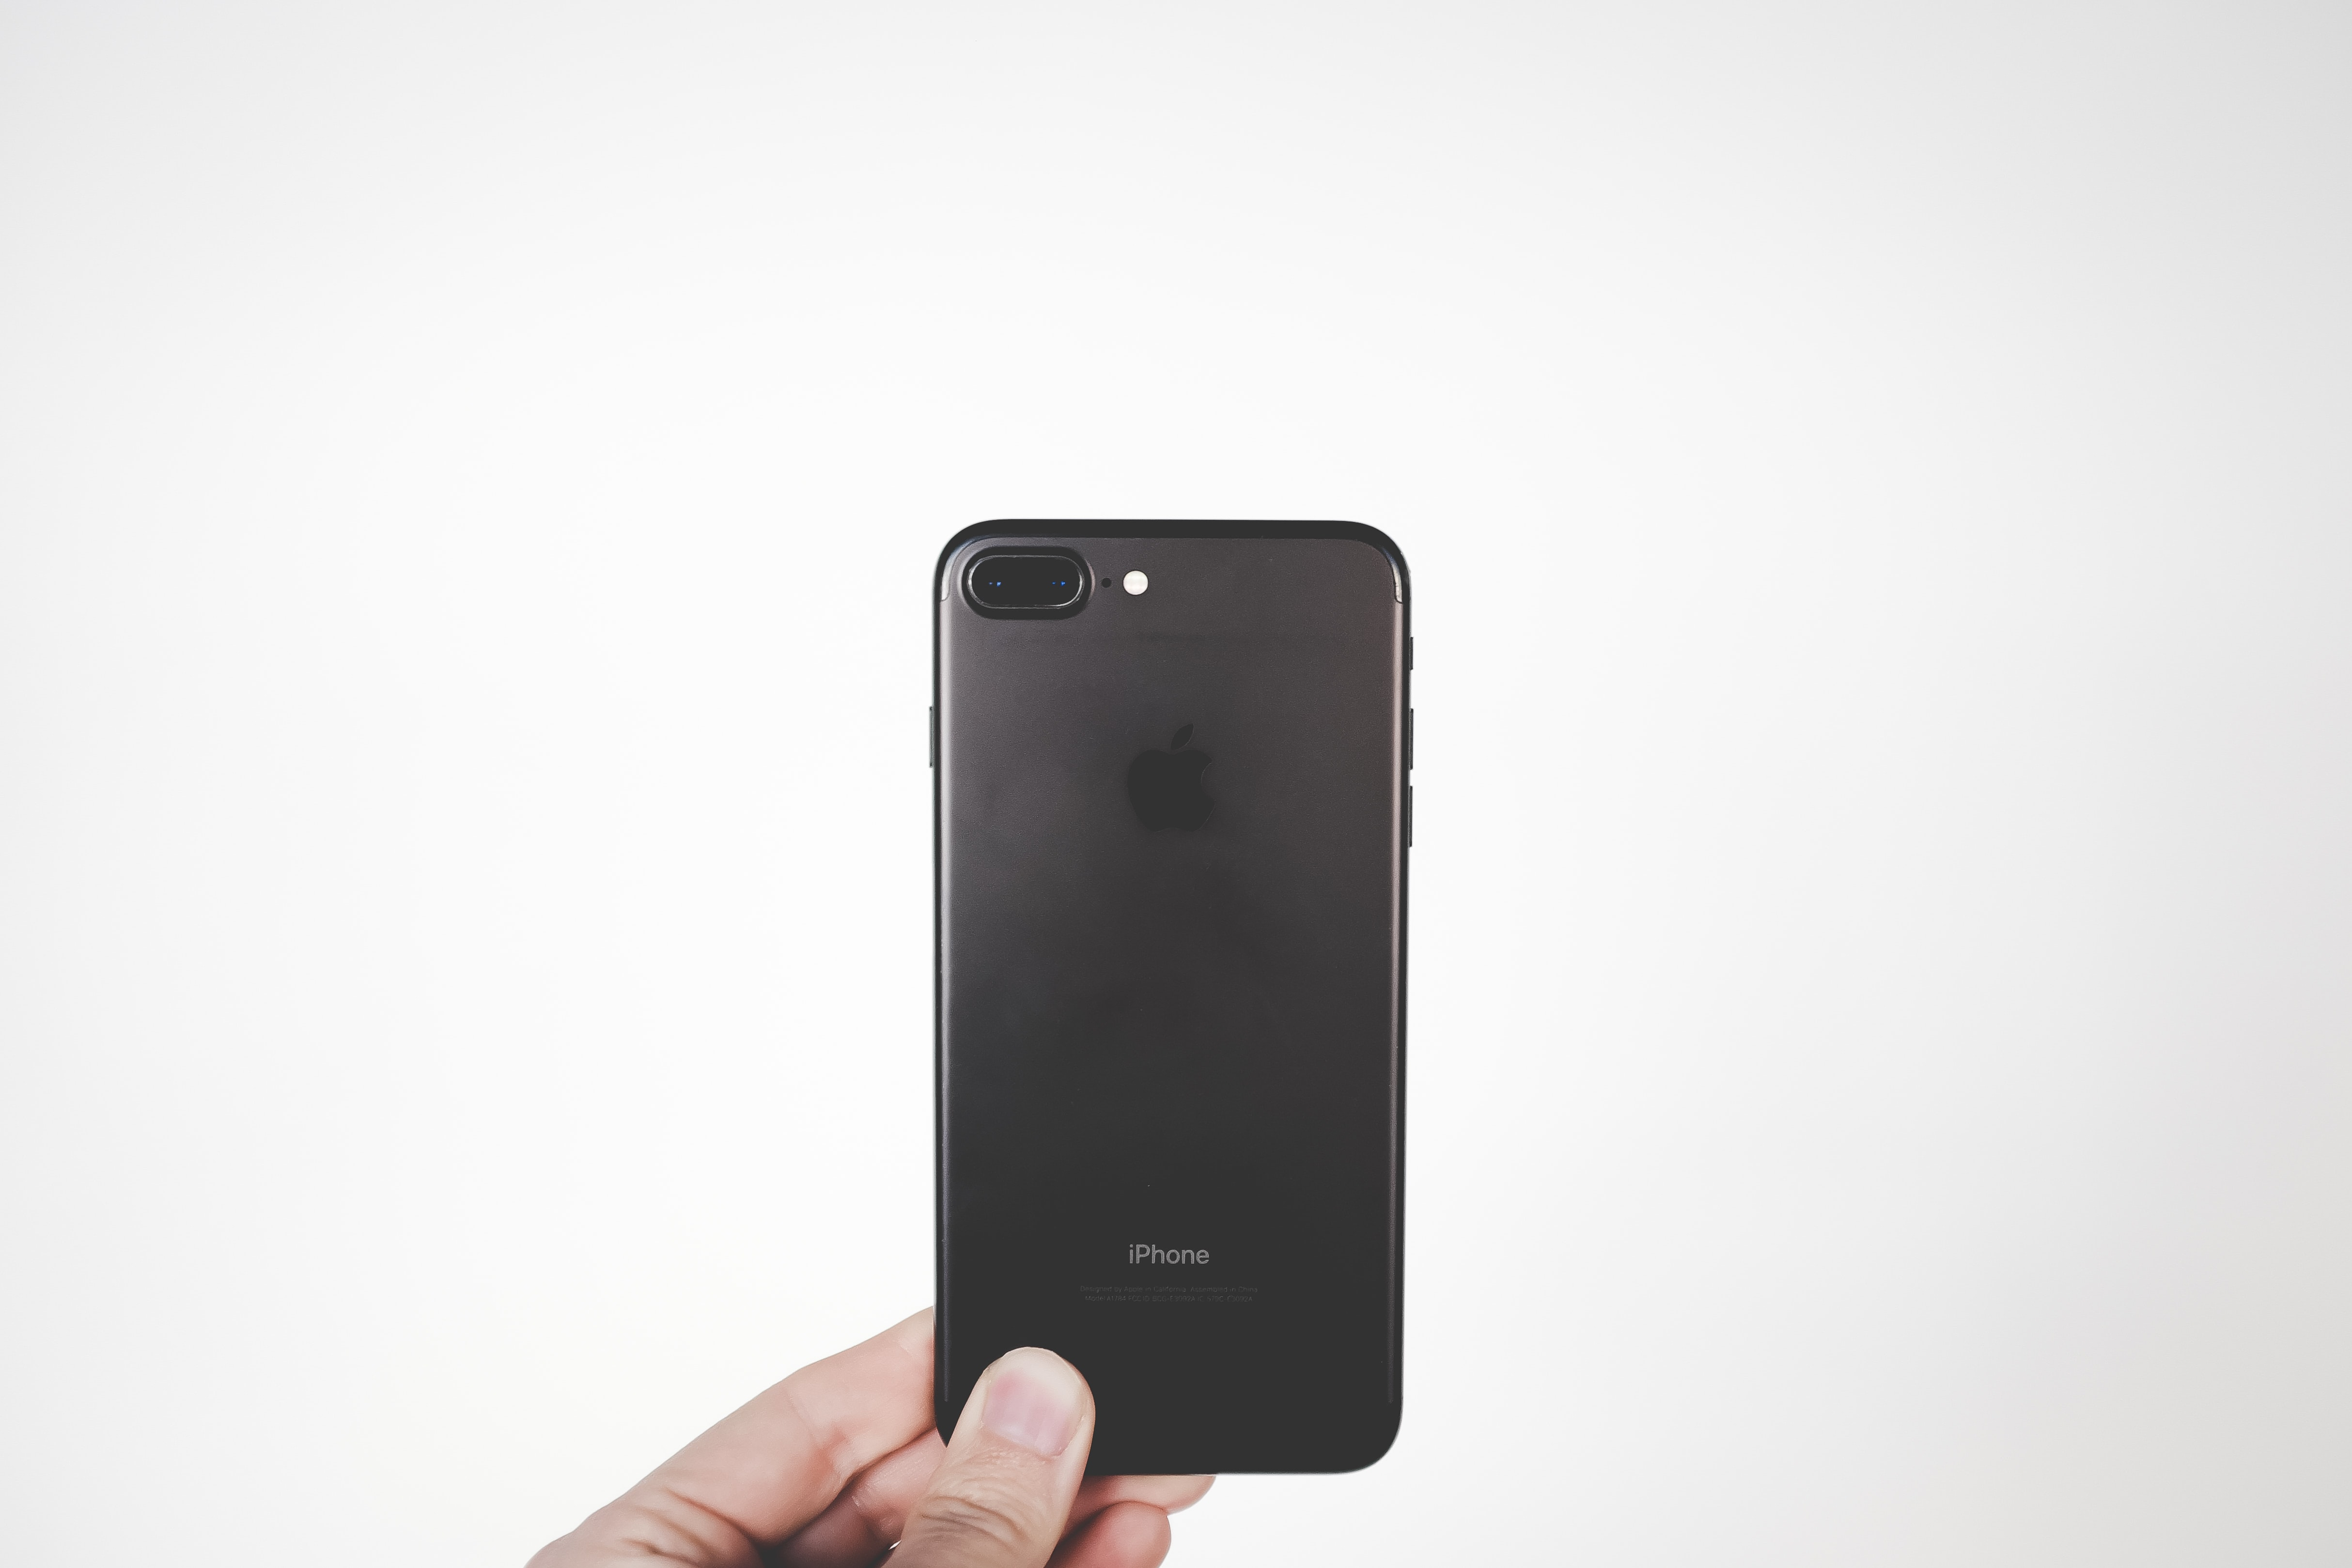 person holding black iPhone 7 Plus